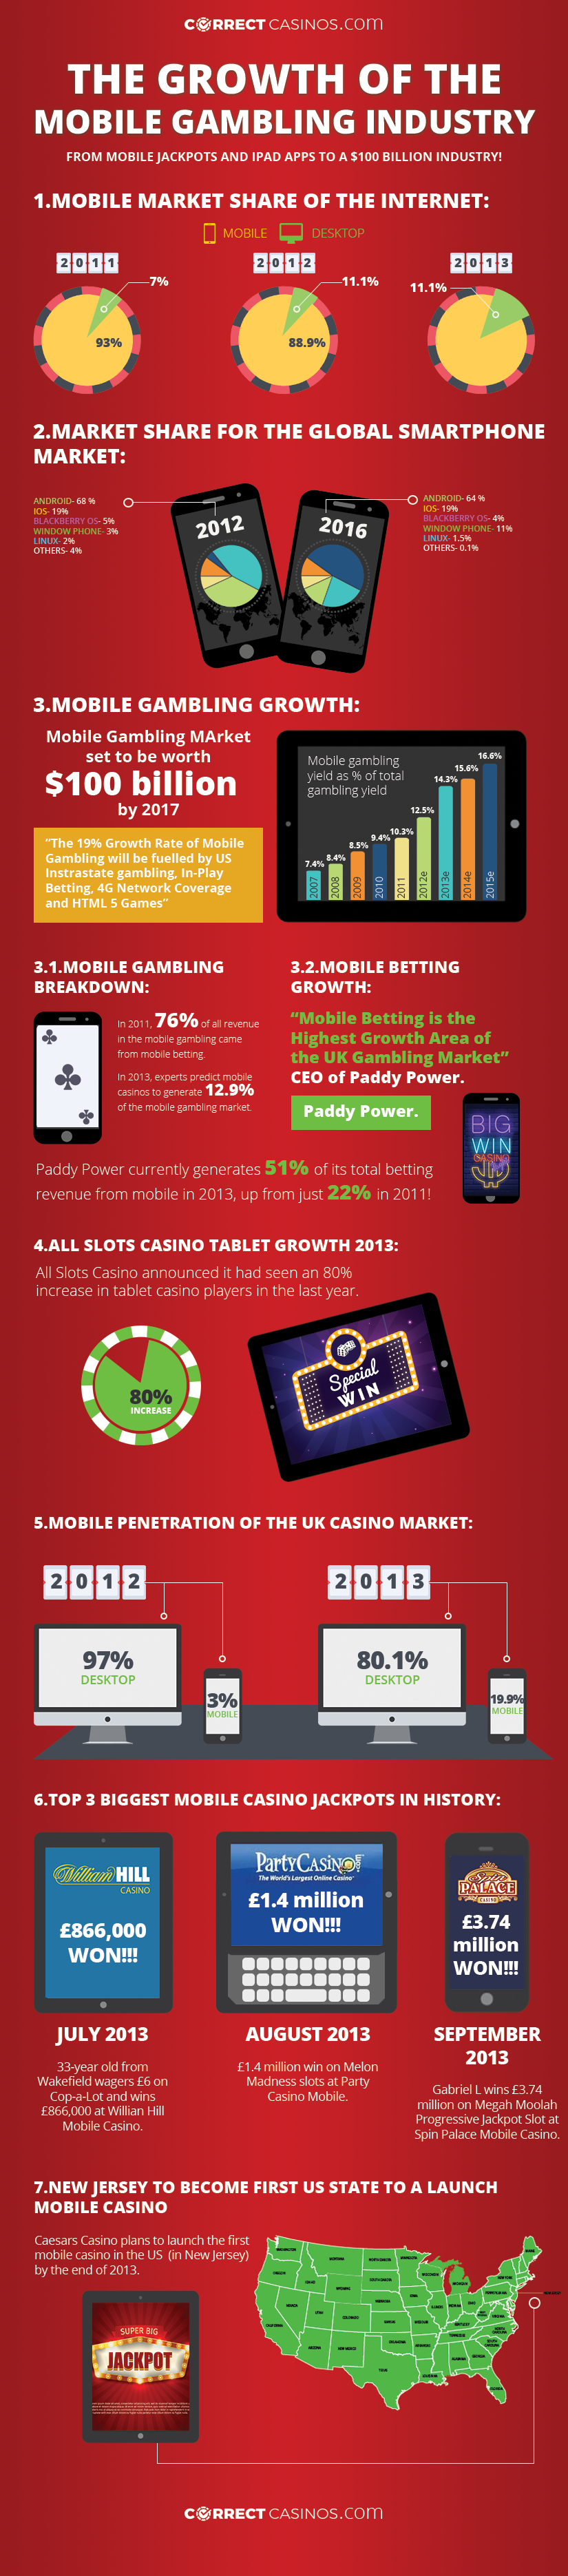 growth-of-the-mobile-gambling-industry